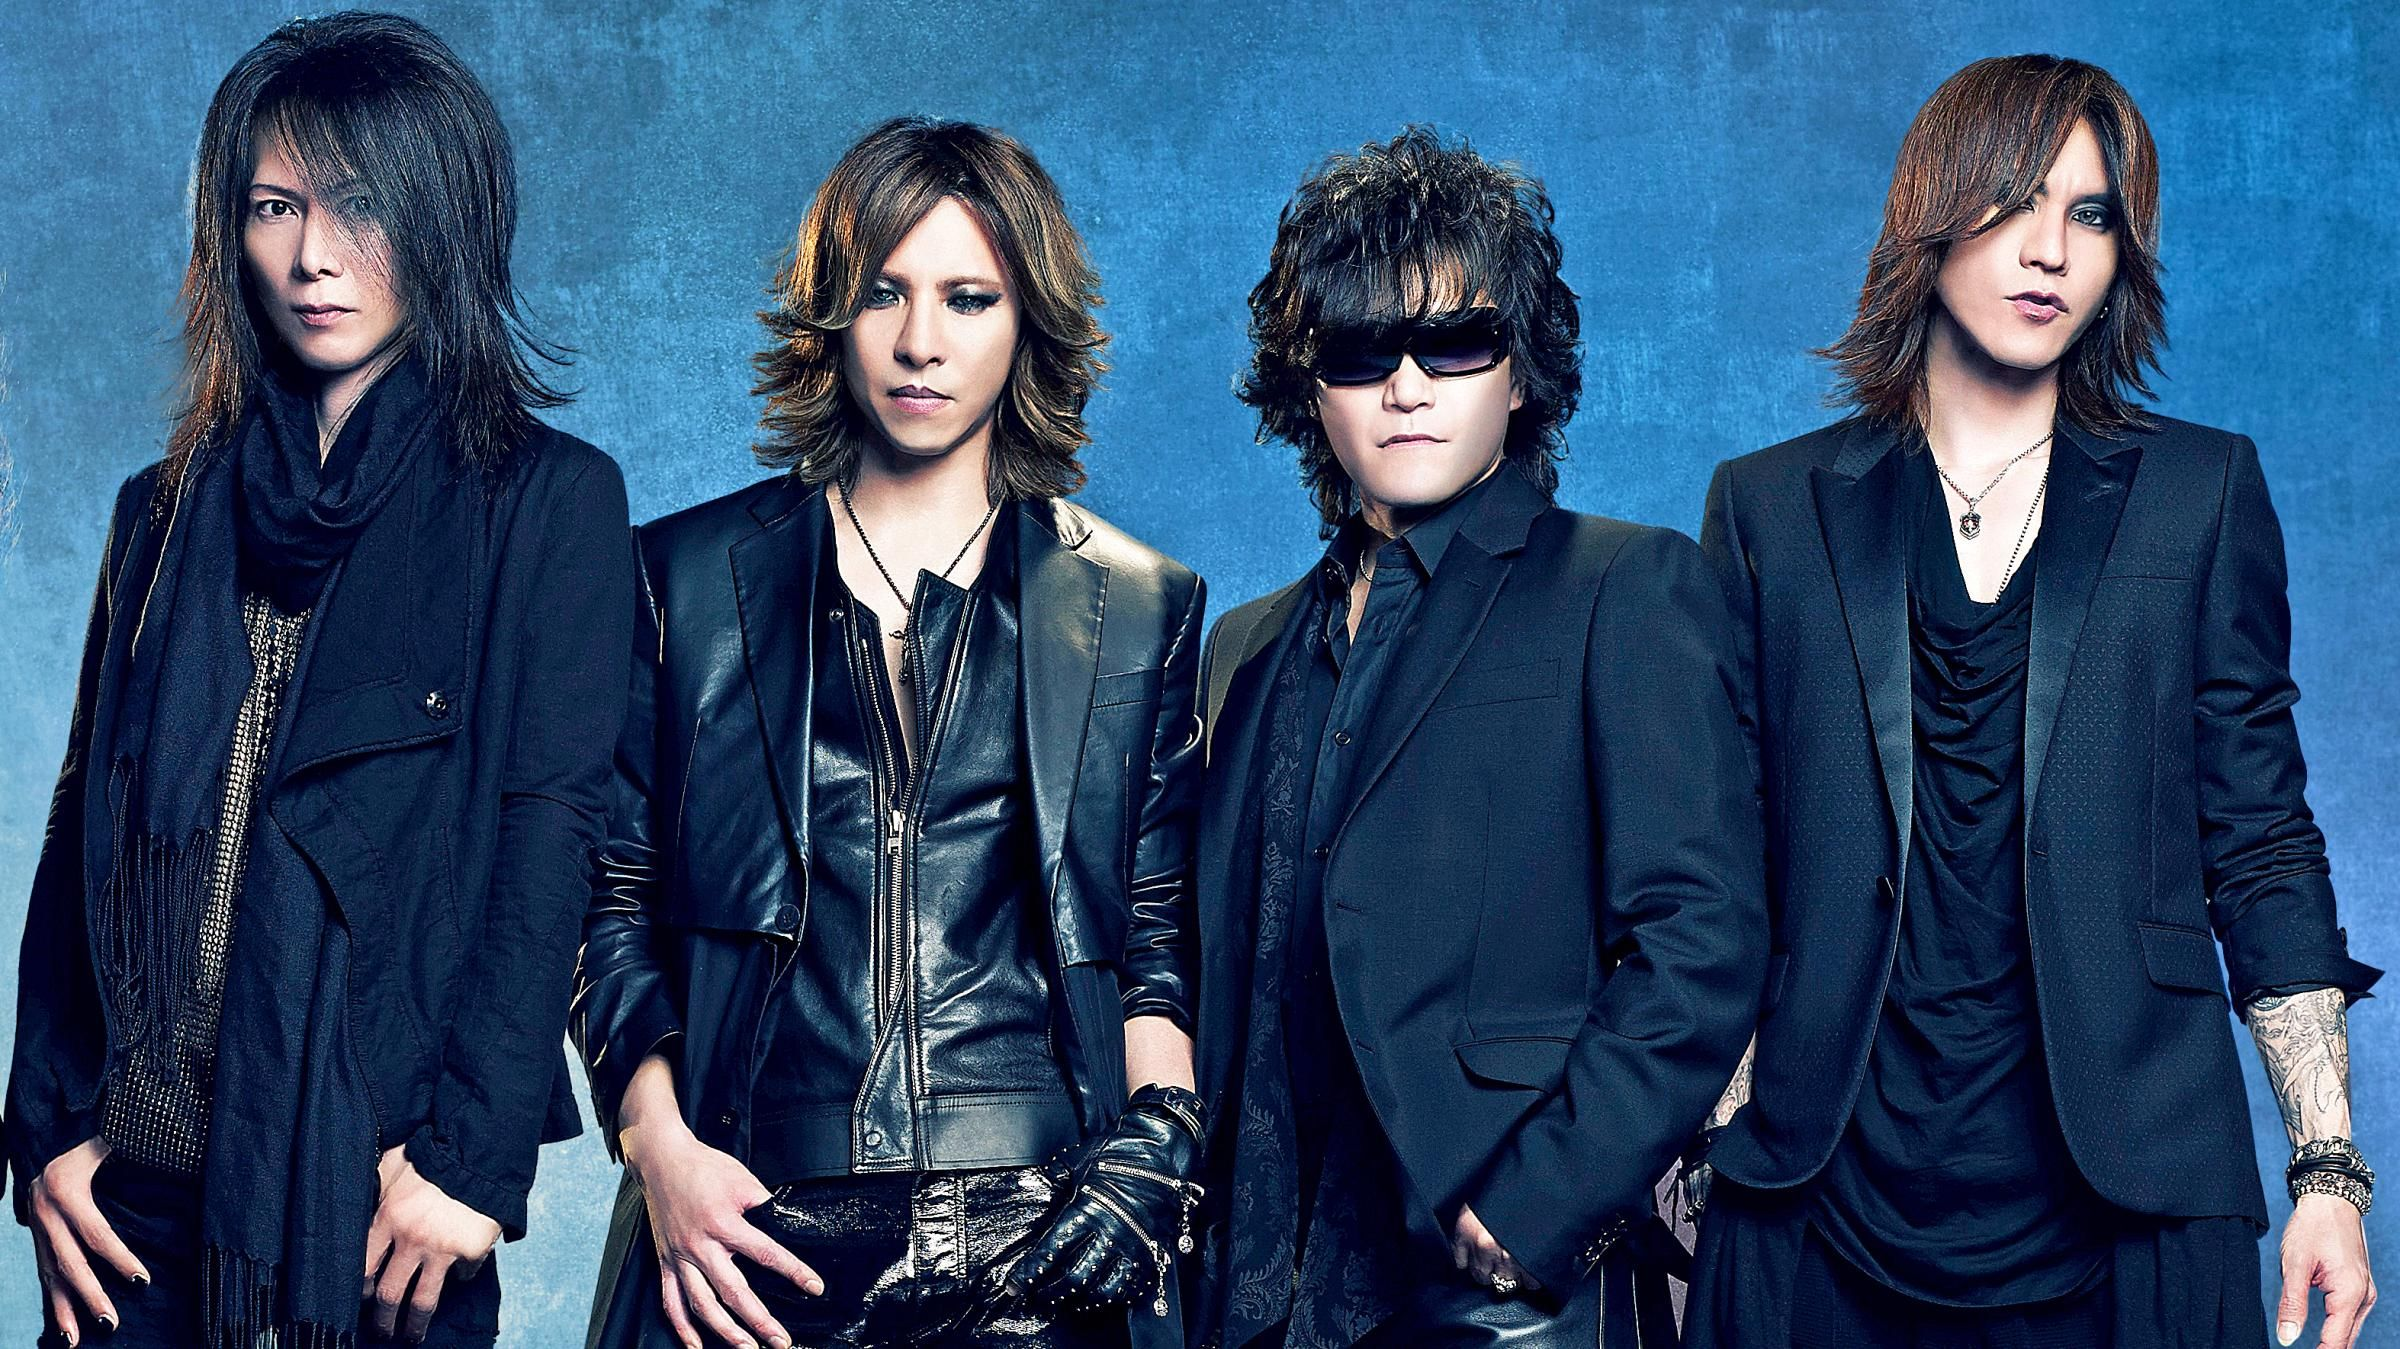 The world's unluckiest band the bizarre story of X Japan